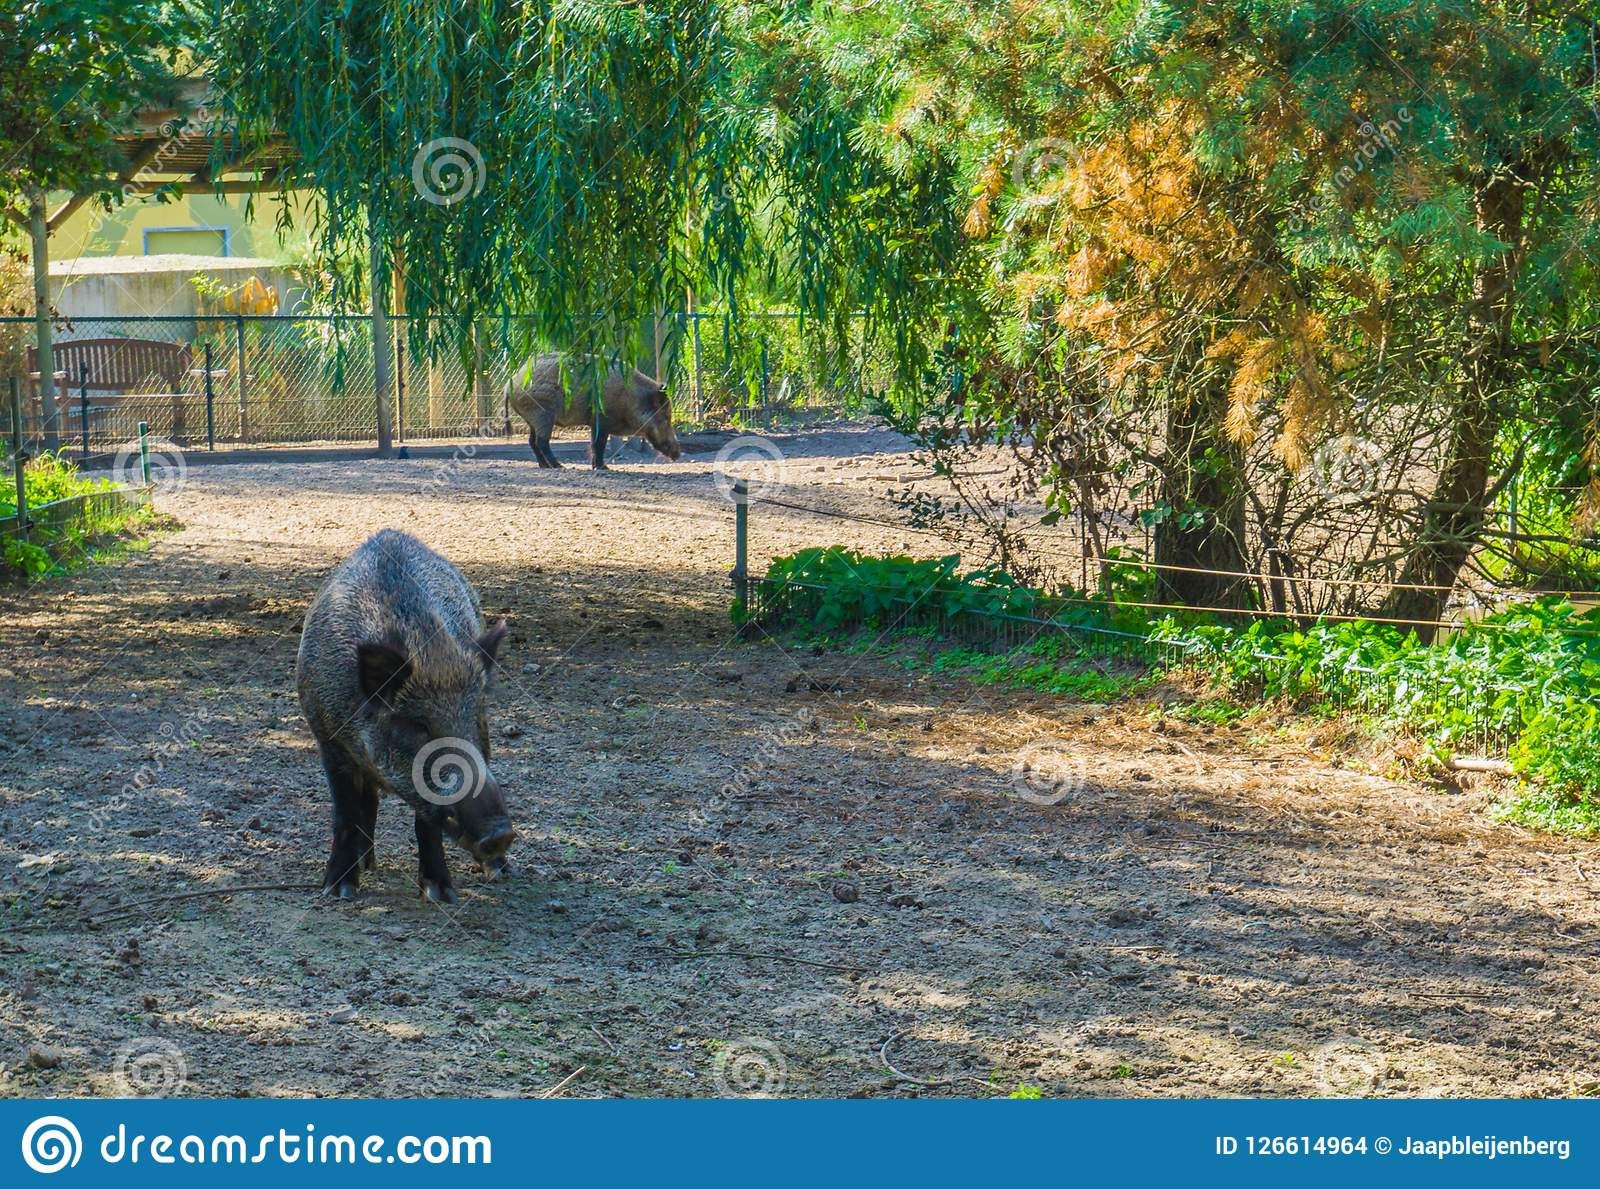 Animal portrait of a wild boar standing in a nature landscape scene with another wild boar in the background